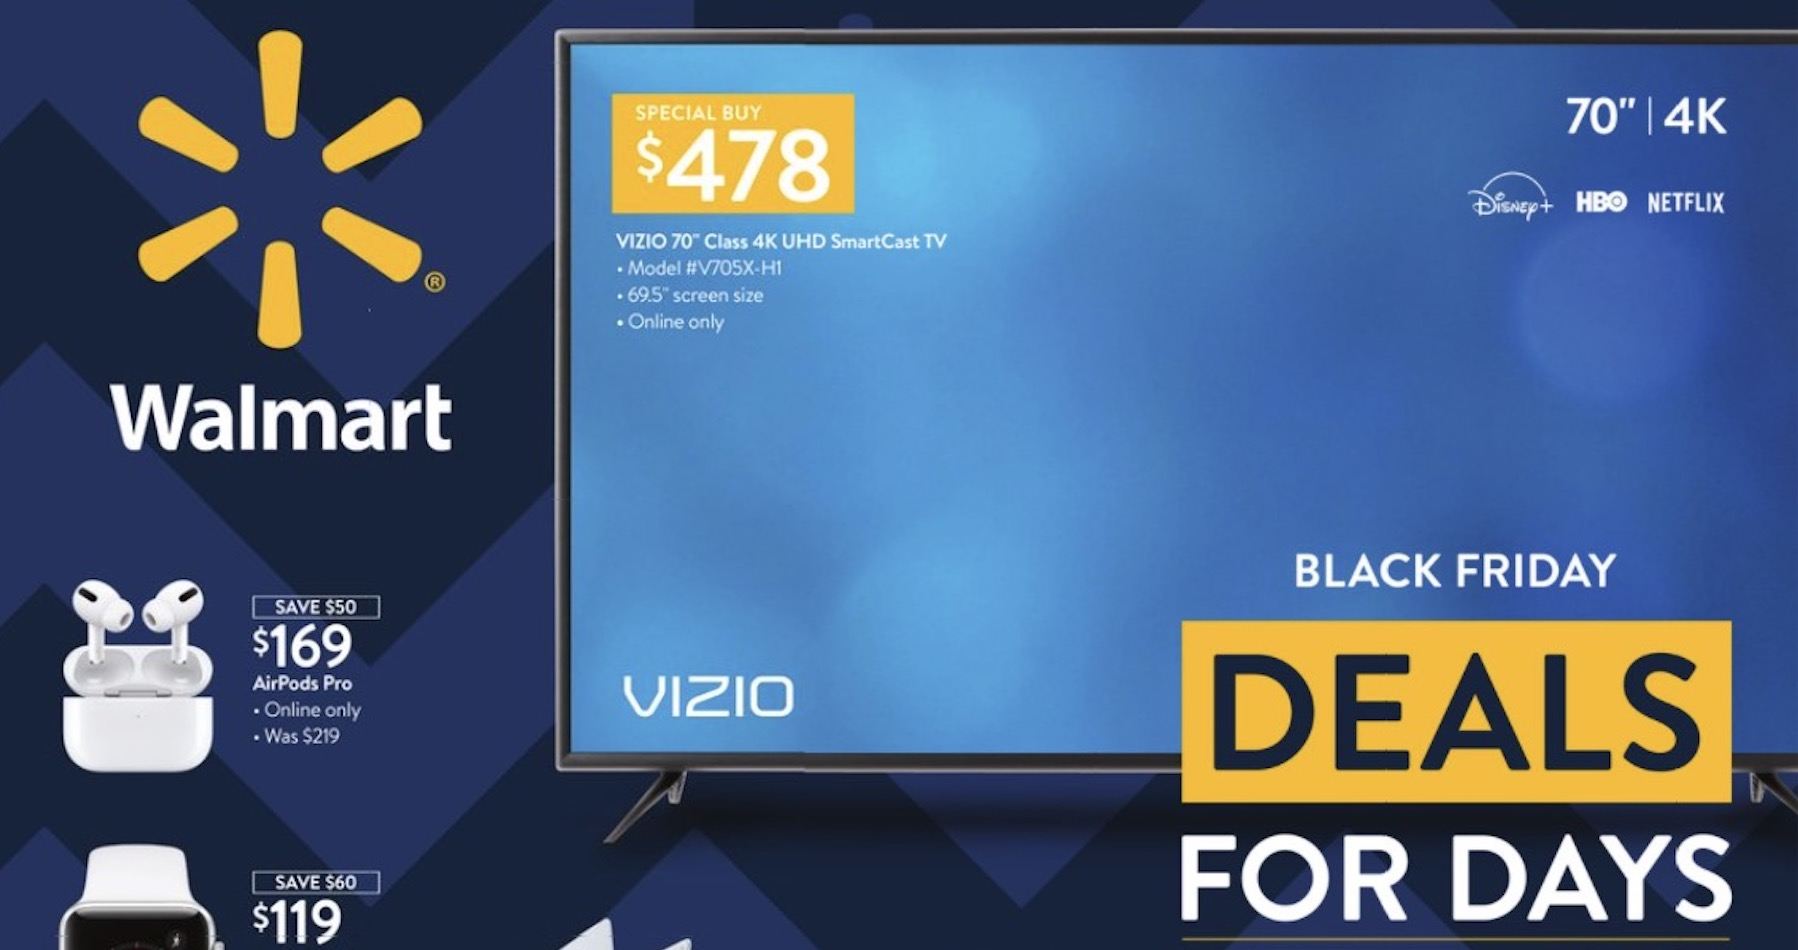 Walmart Black Friday Here Are The Best Deals You Can Find Right Now Online Wnct